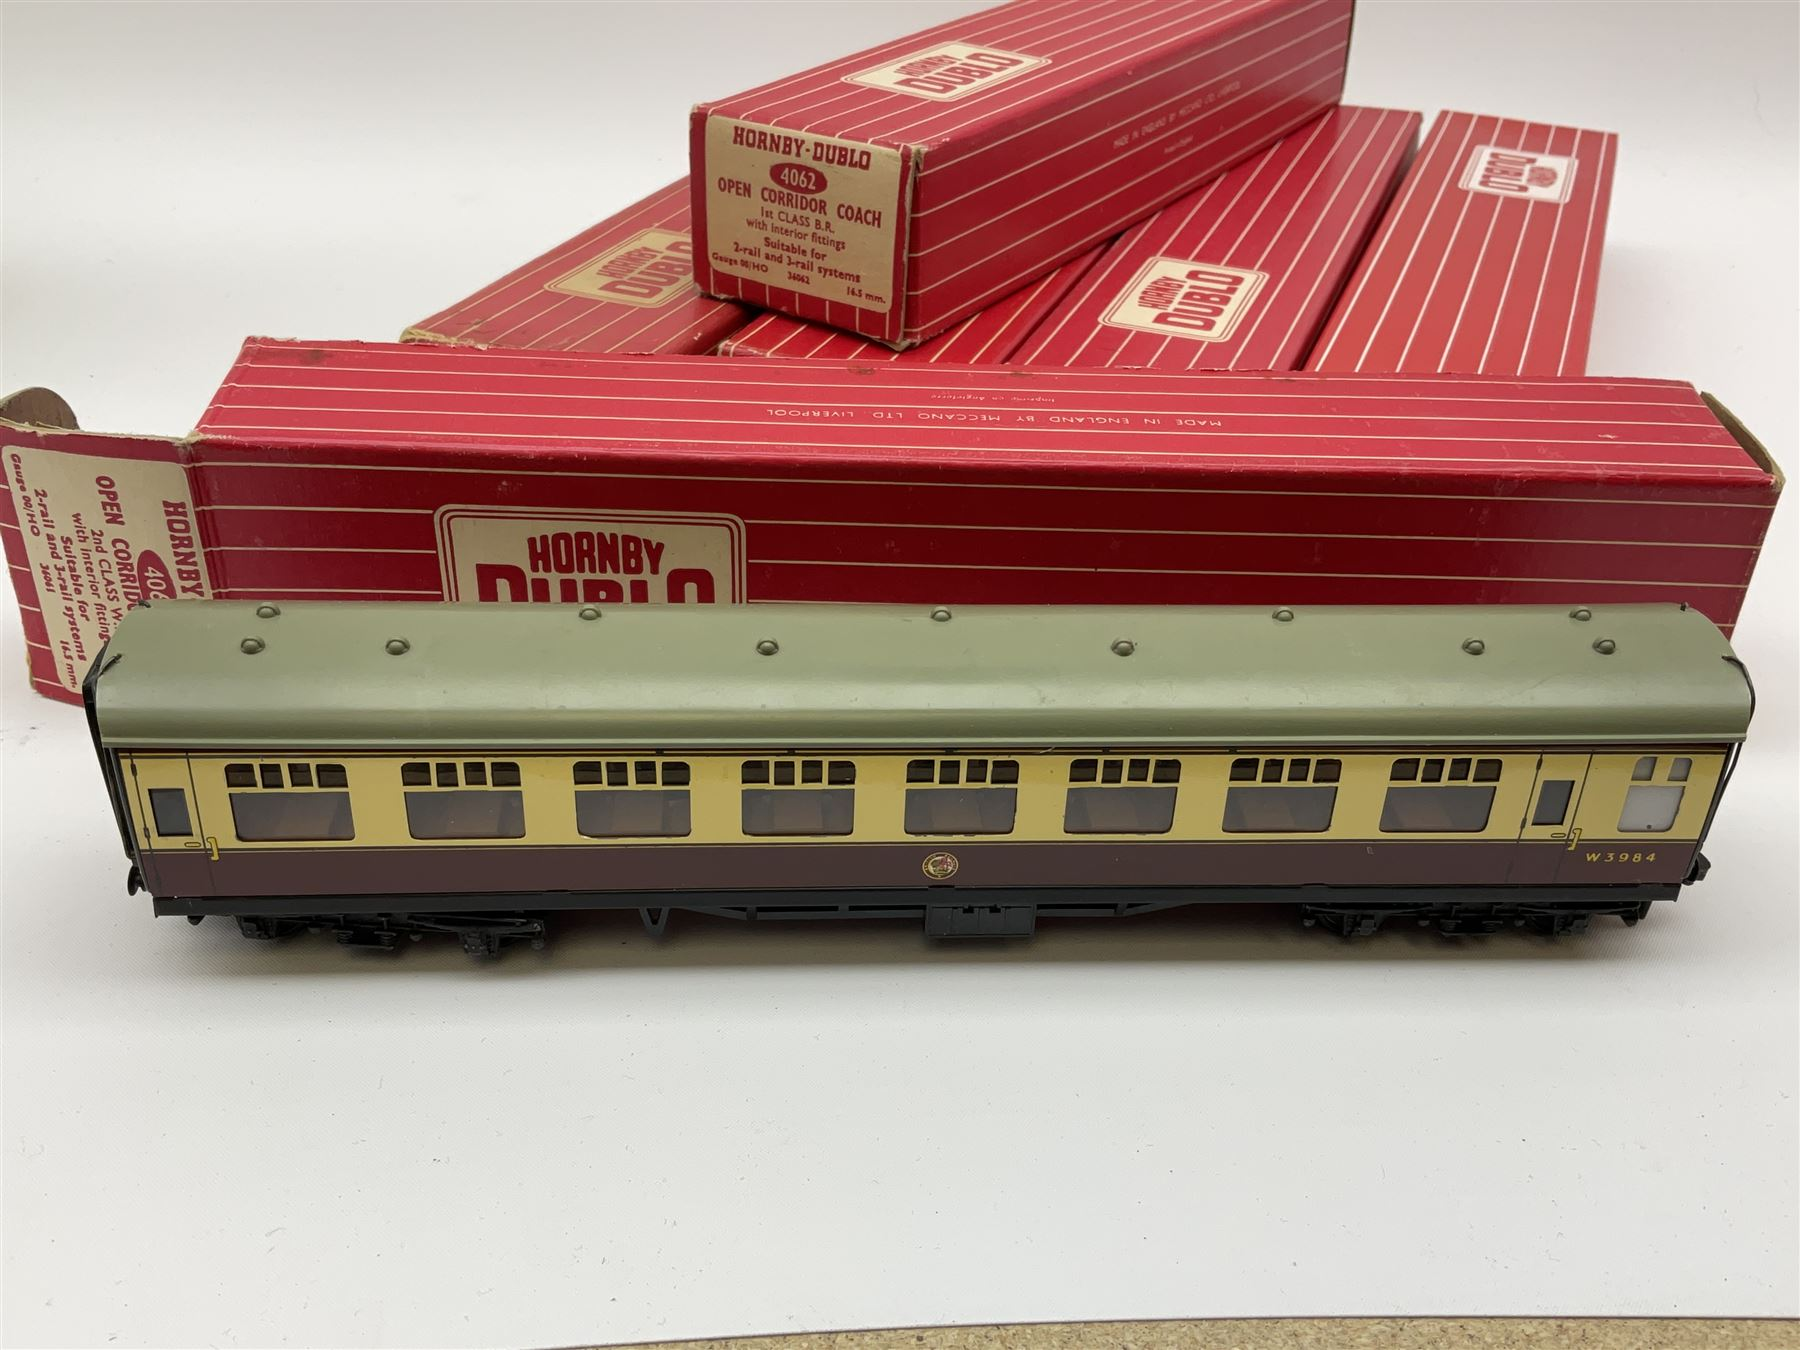 Hornby Dublo - six coaches comprising 4052 Corridor Coach 1st/2nd B.R. in Tony Cooper 1986 box; 4053 - Image 2 of 3